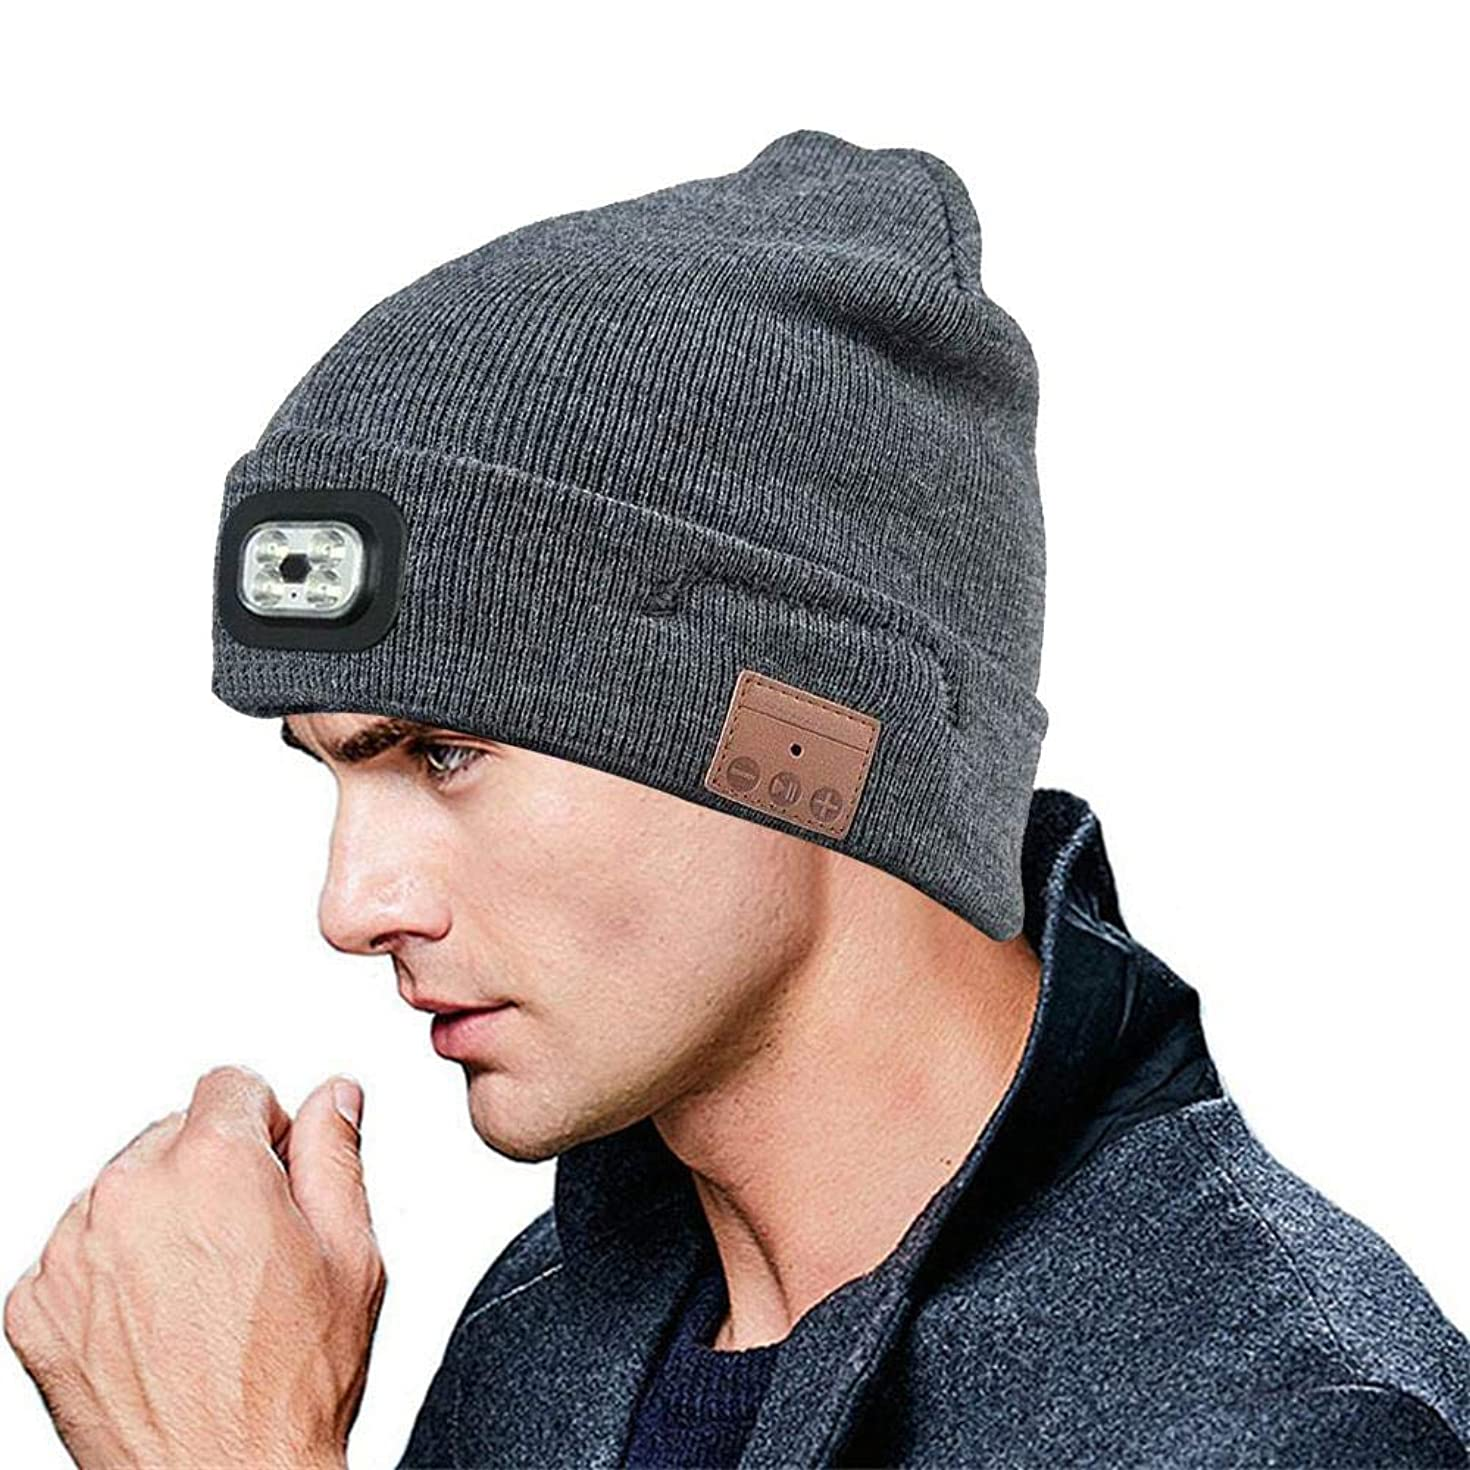 FOONEE Wireless Bluetooth Beanie Hat Music Knitted Cap with LED Headlamp Wireless Headphone- USB Rechargeable Musical Cap for Men, Women & Teens